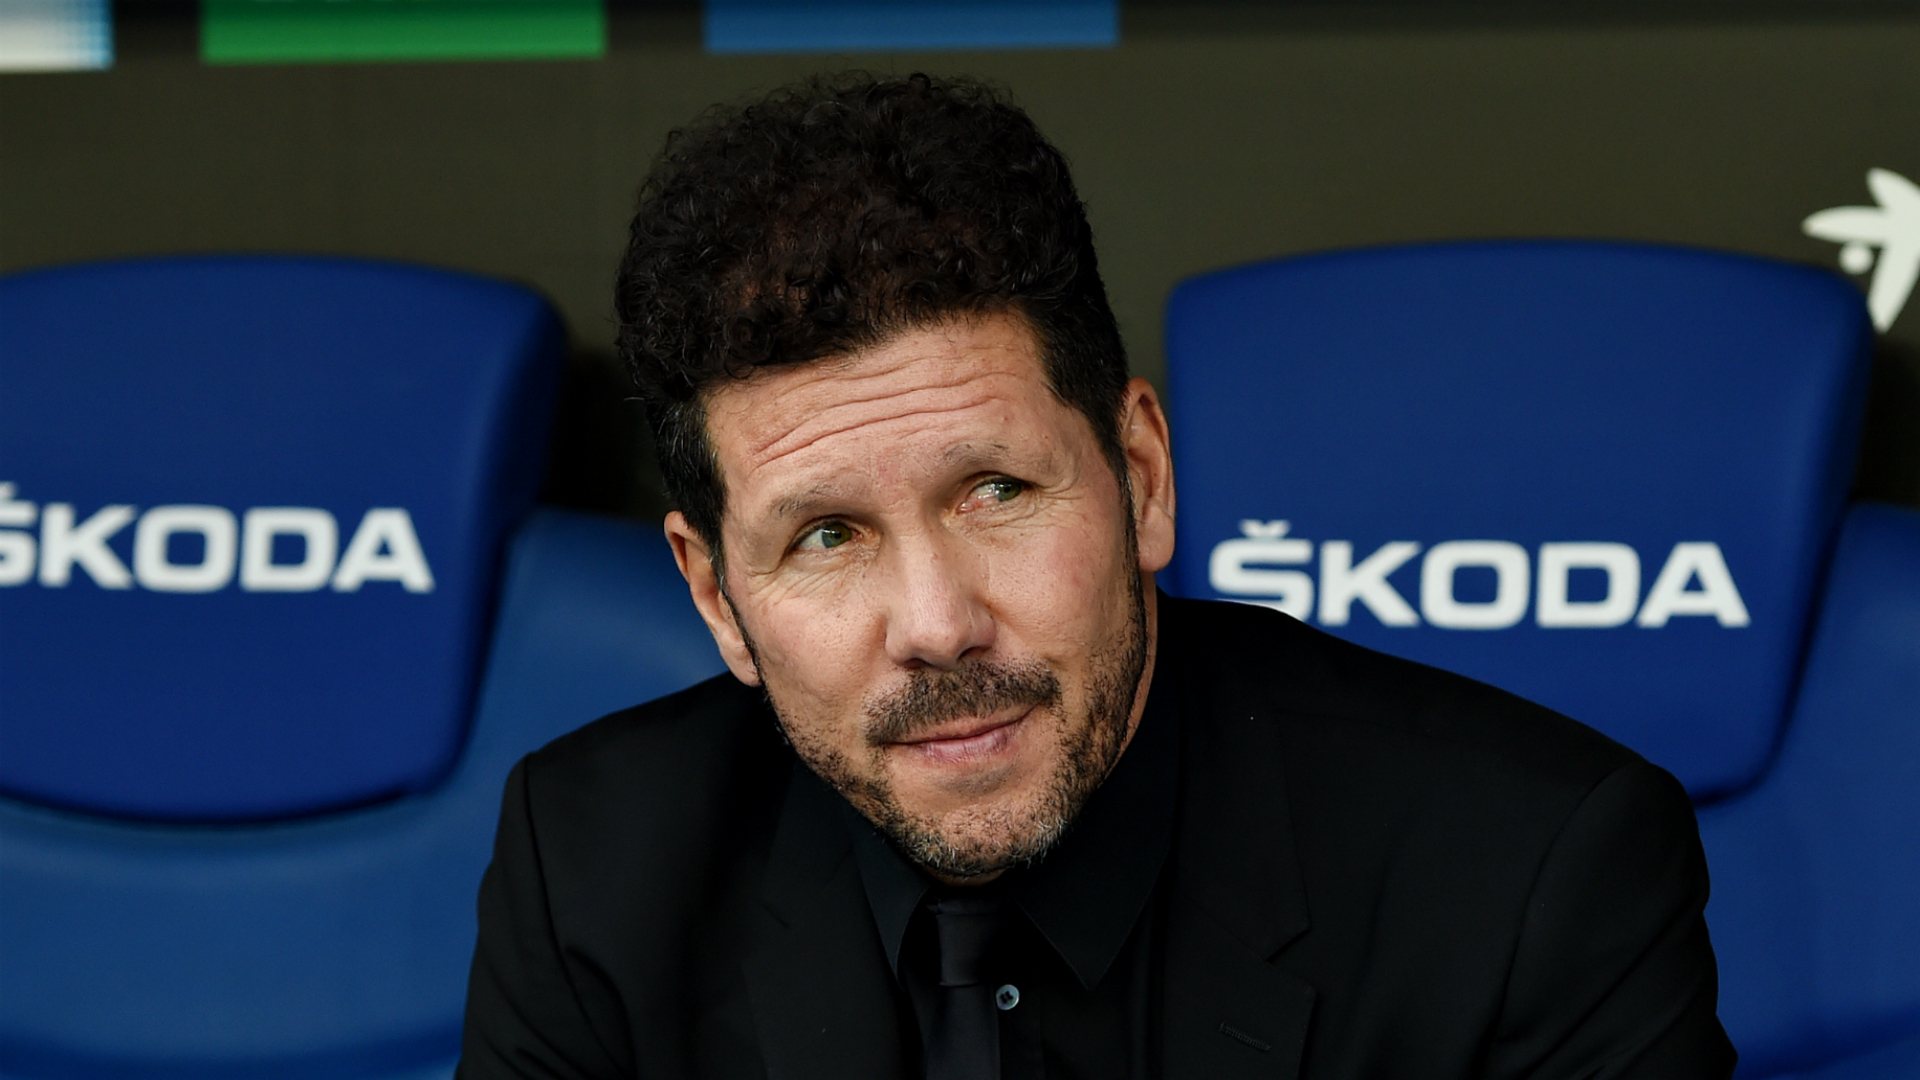 Atletico do not lack intensity, insists Simeone